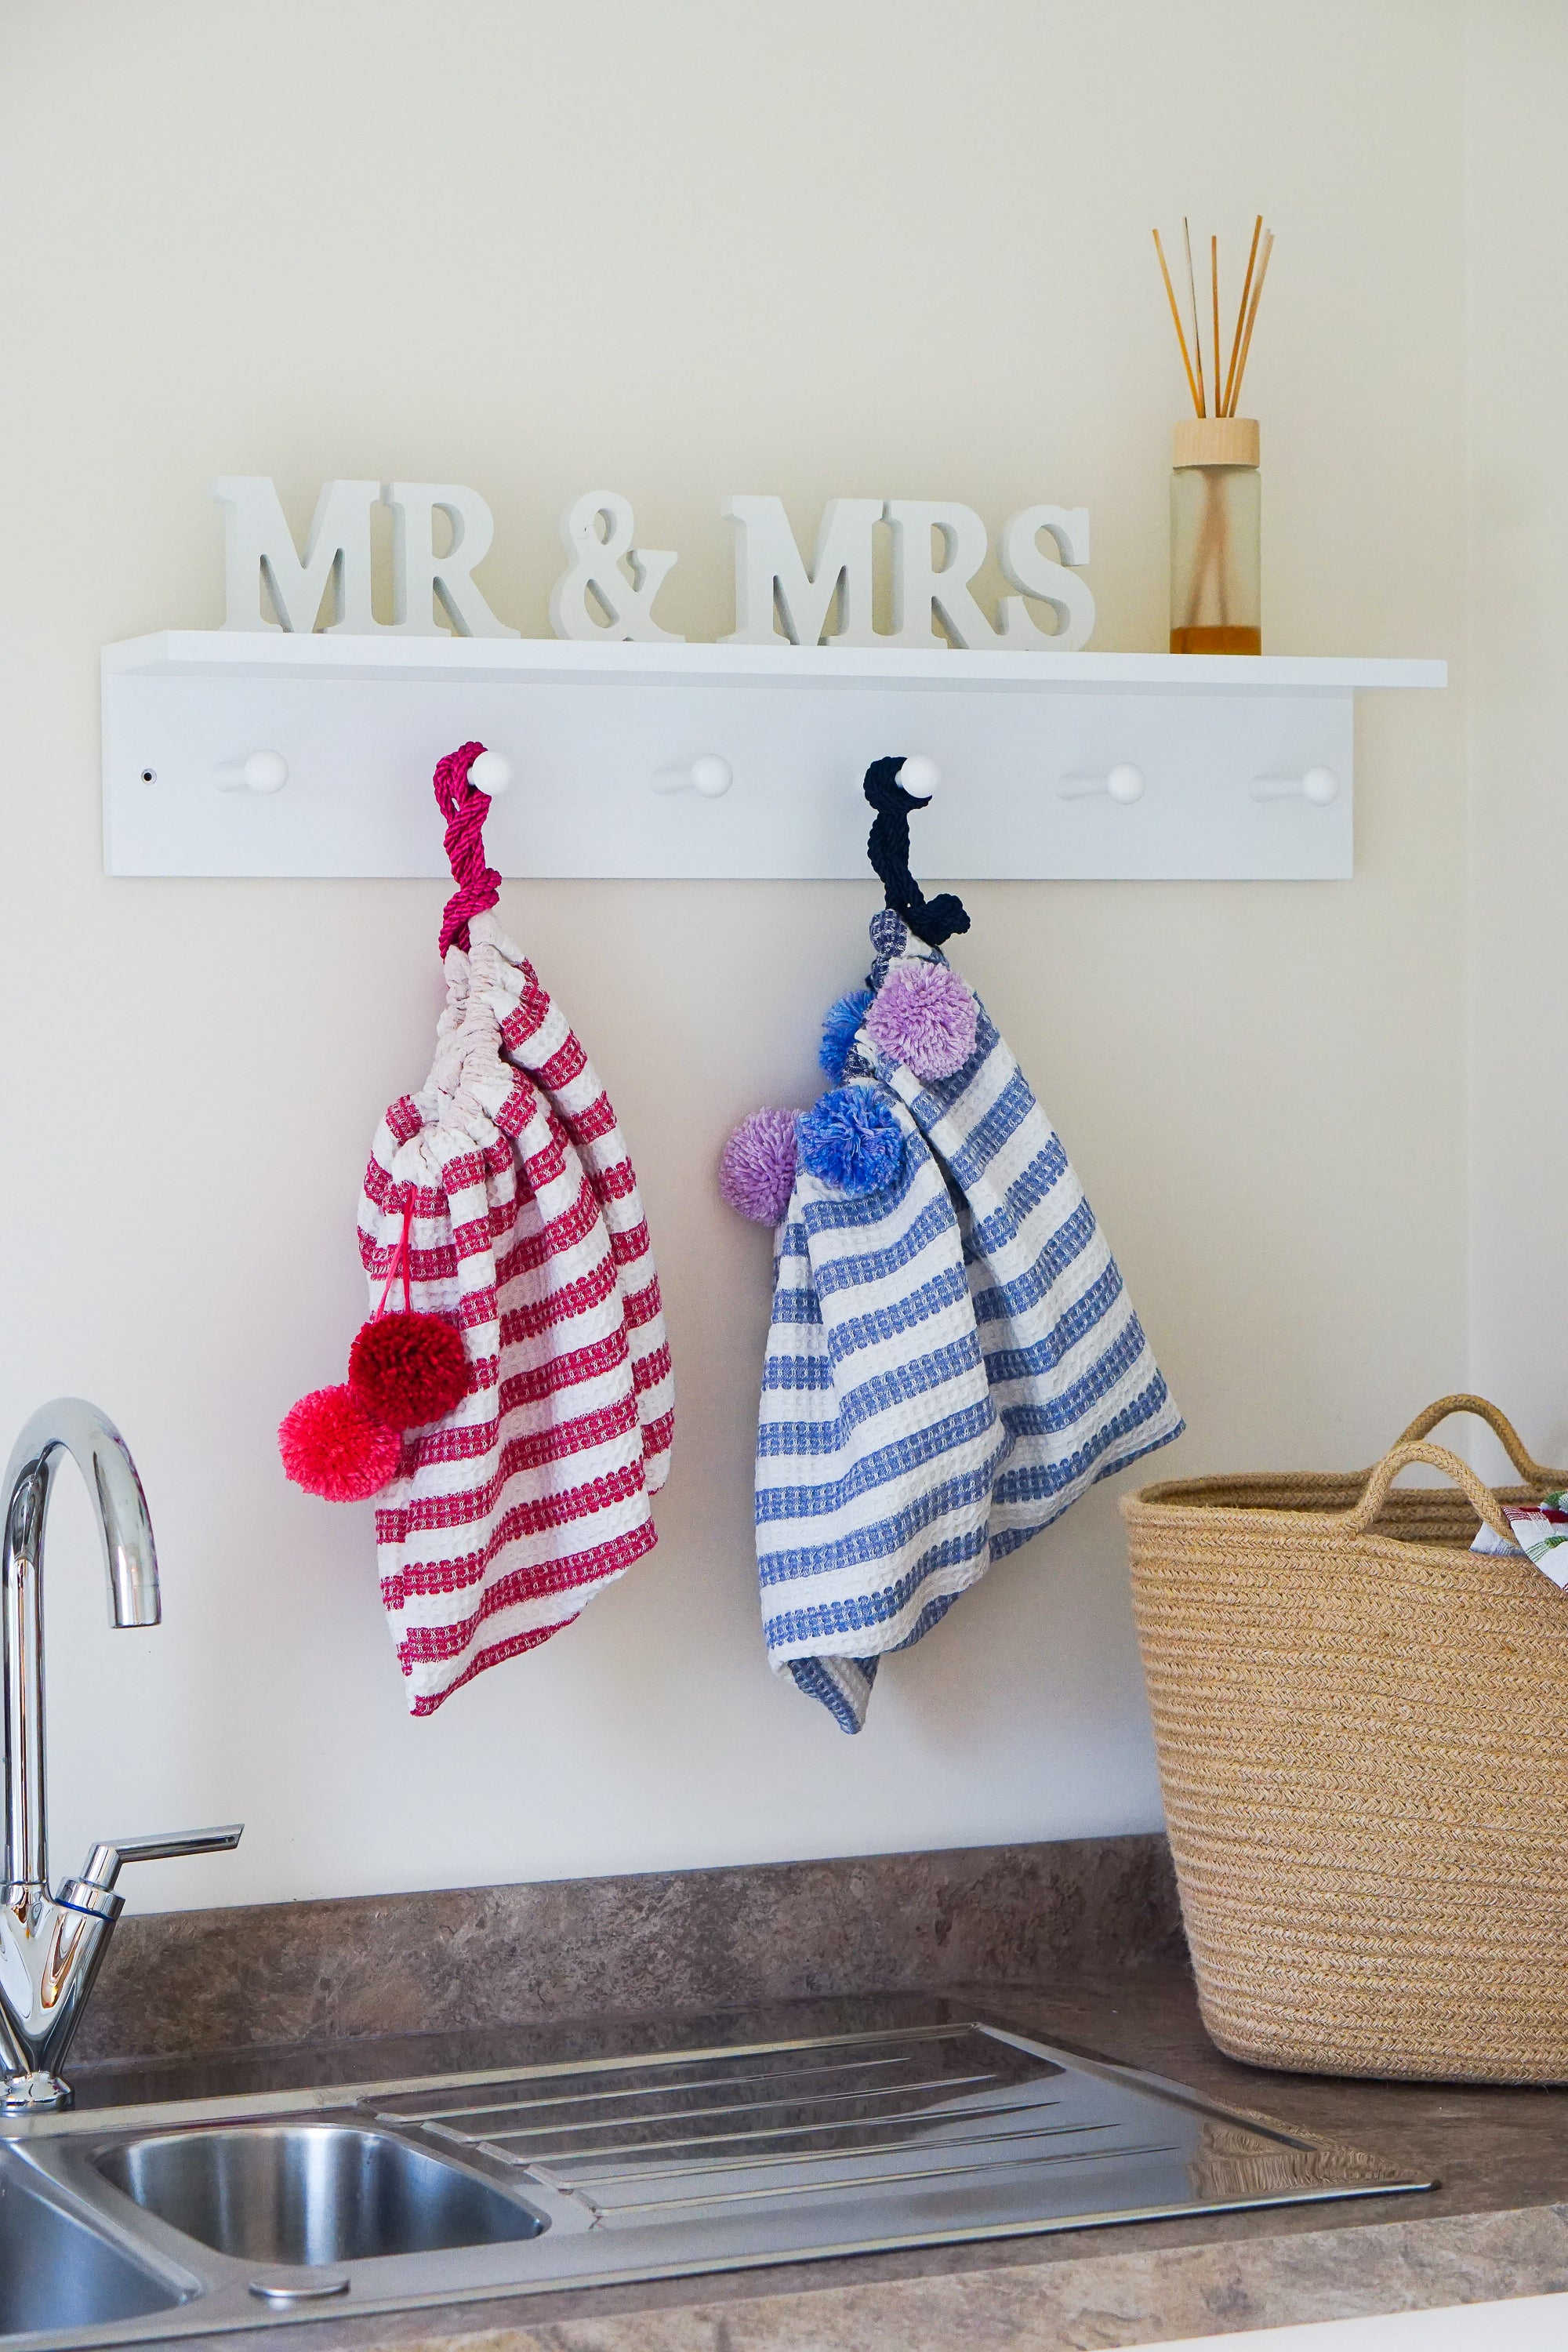 GET CRAFTY: SEW YOUR OWN TEA TOWEL STORAGE BAGS